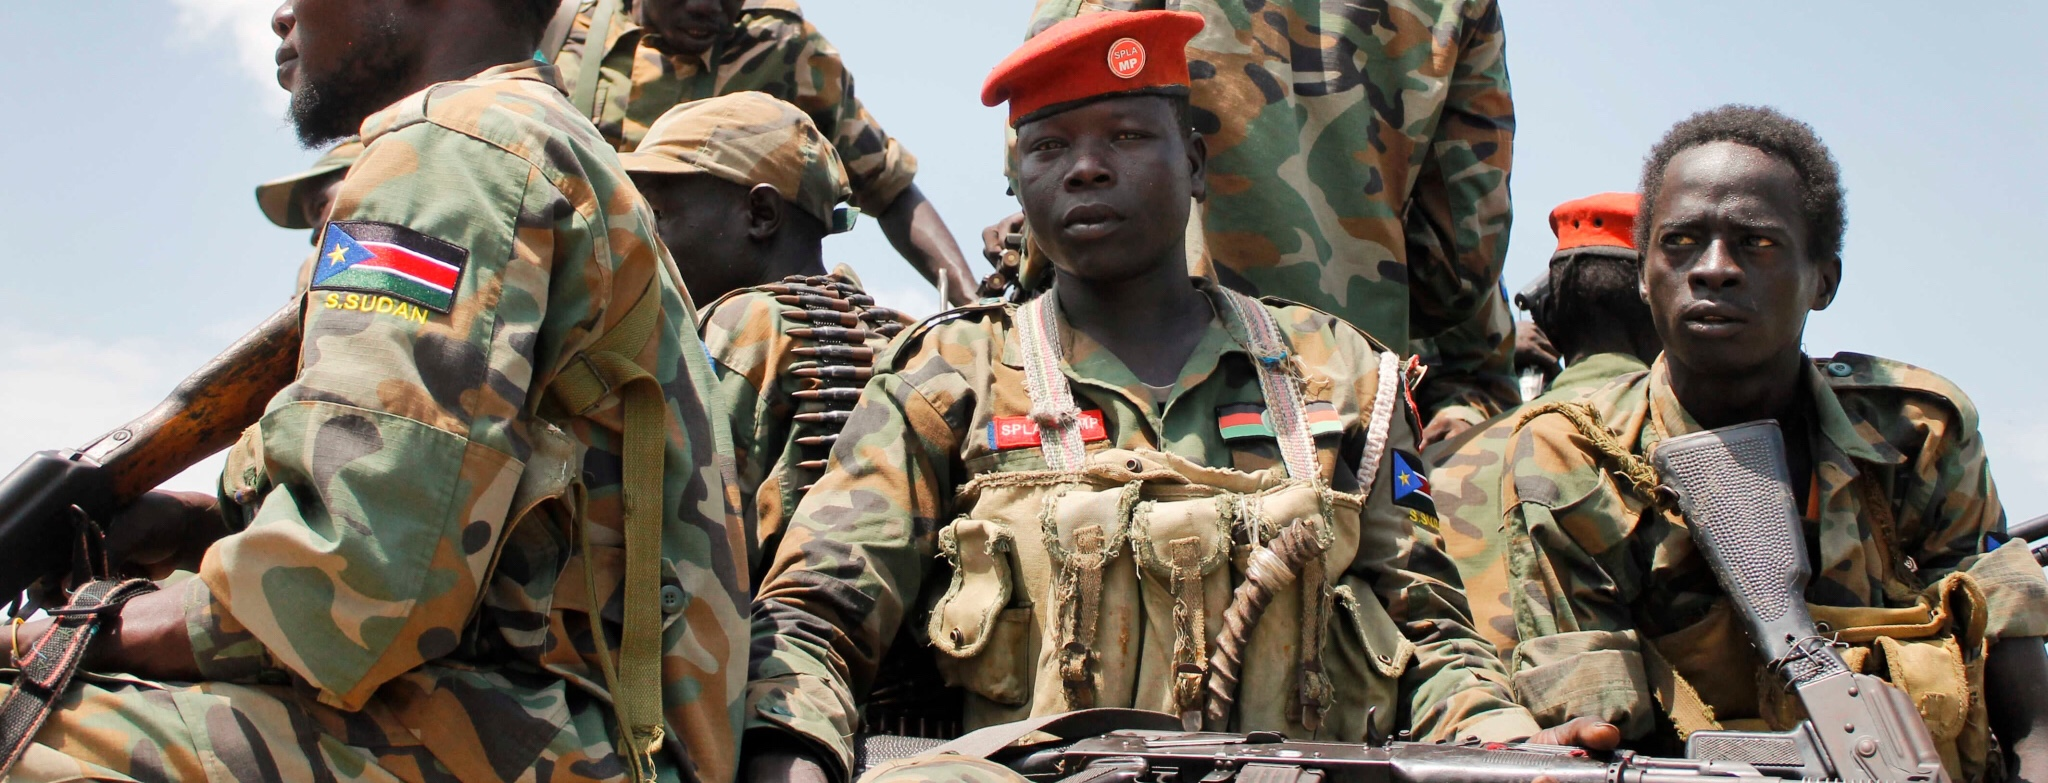 South Sudan: scores killed in disarmament operation